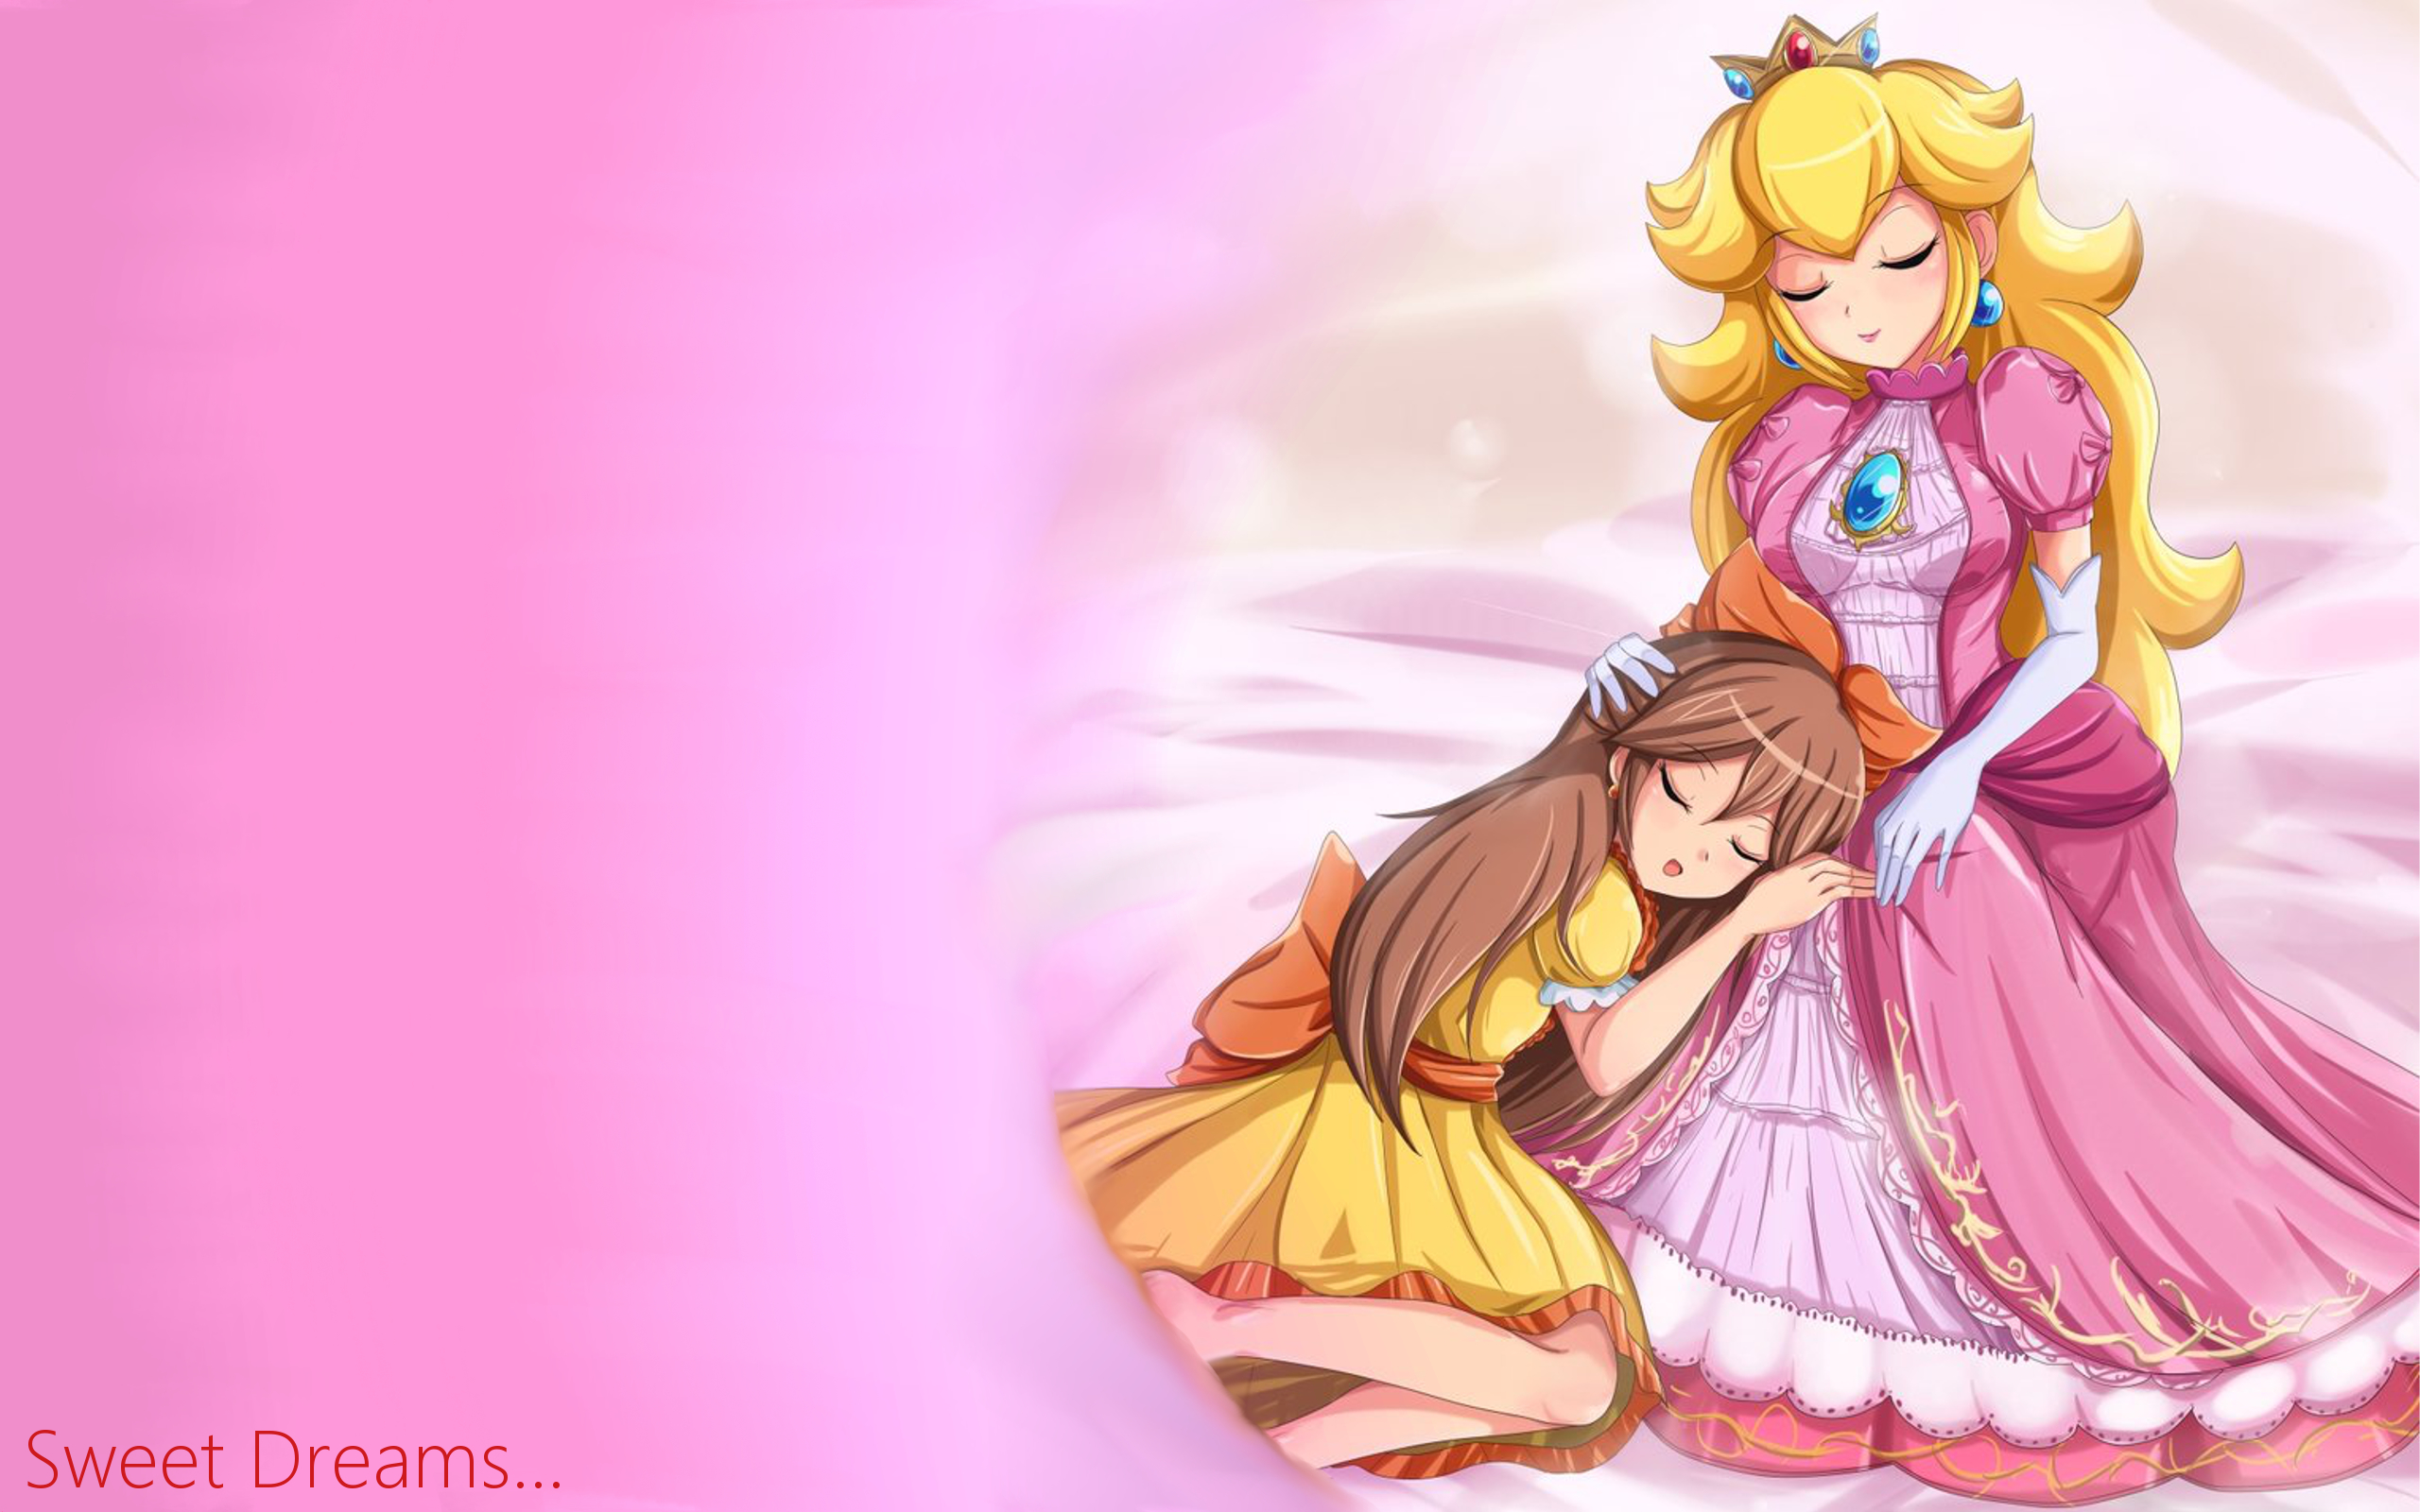 Mario Princess peach Anime HD Wallpaper